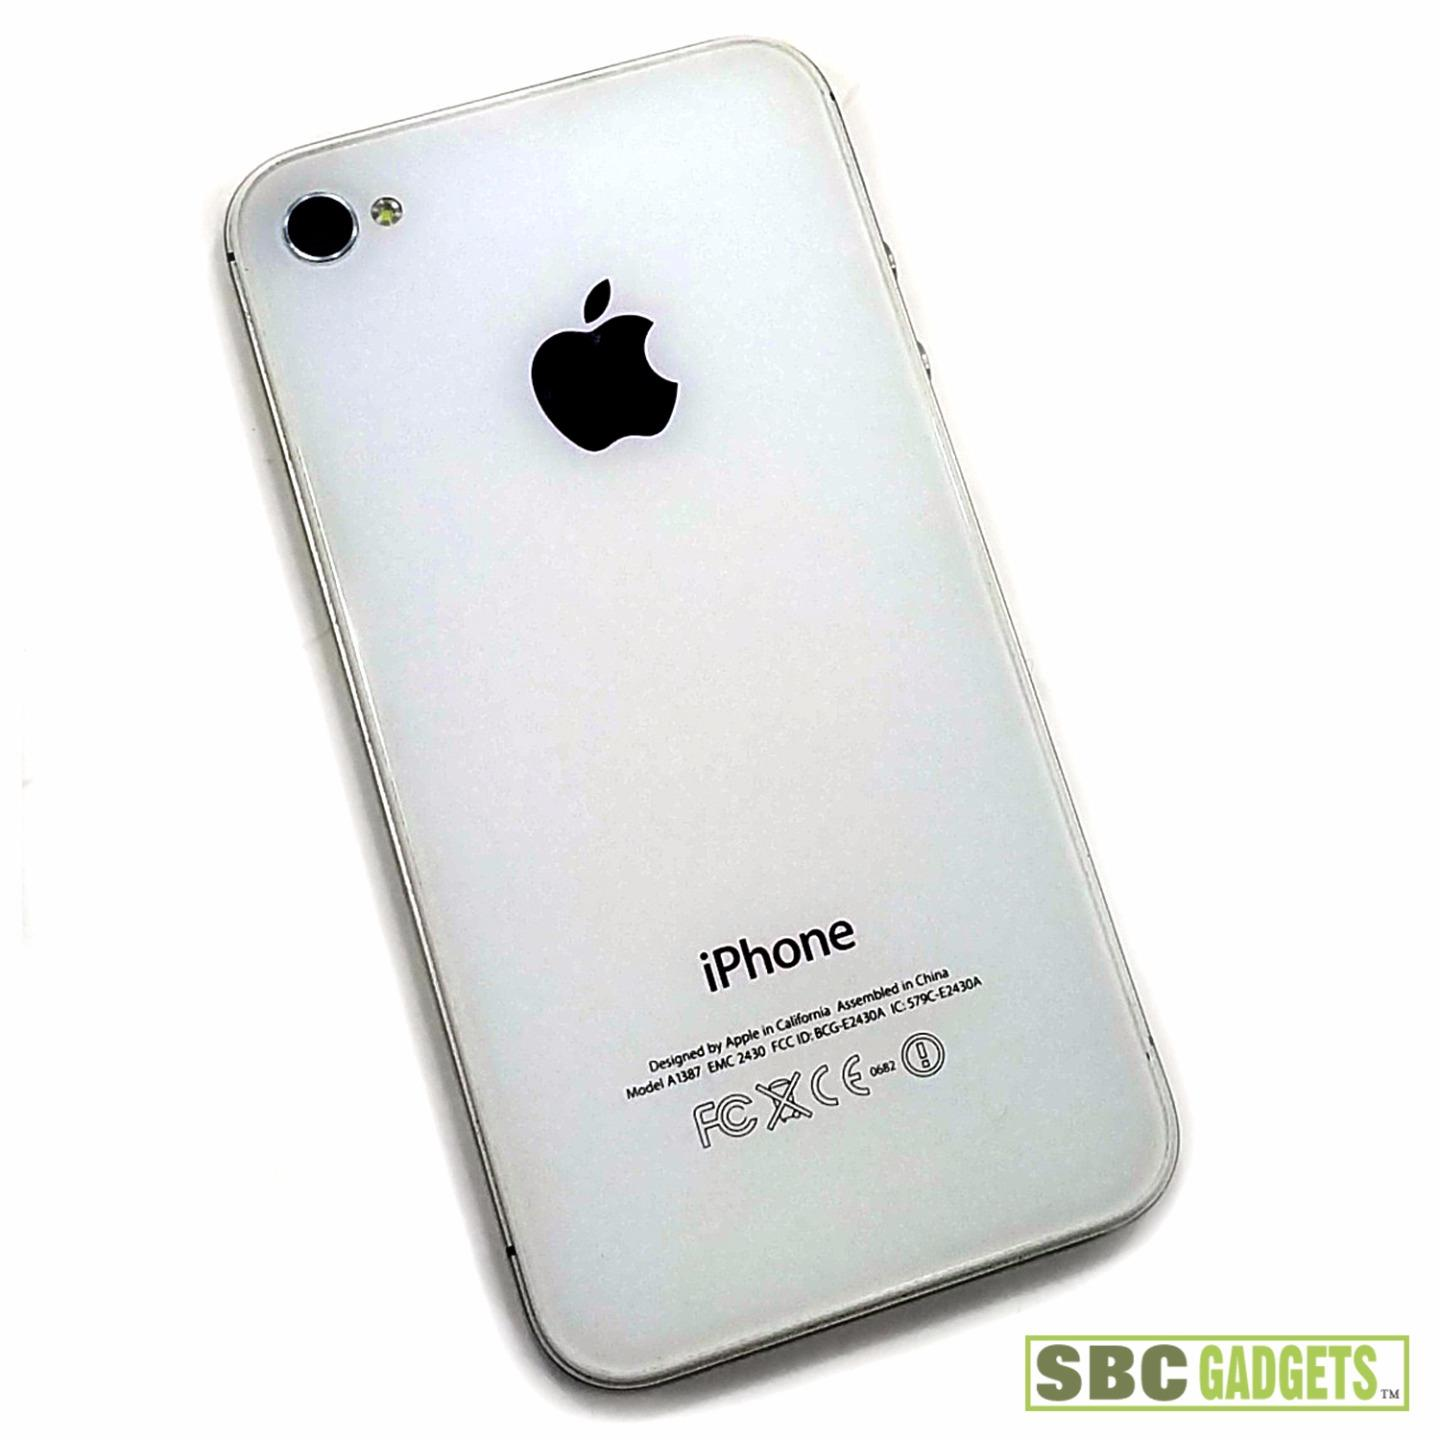 iphone model a1387 for parts apple iphone 4s white blue screen failure 12044